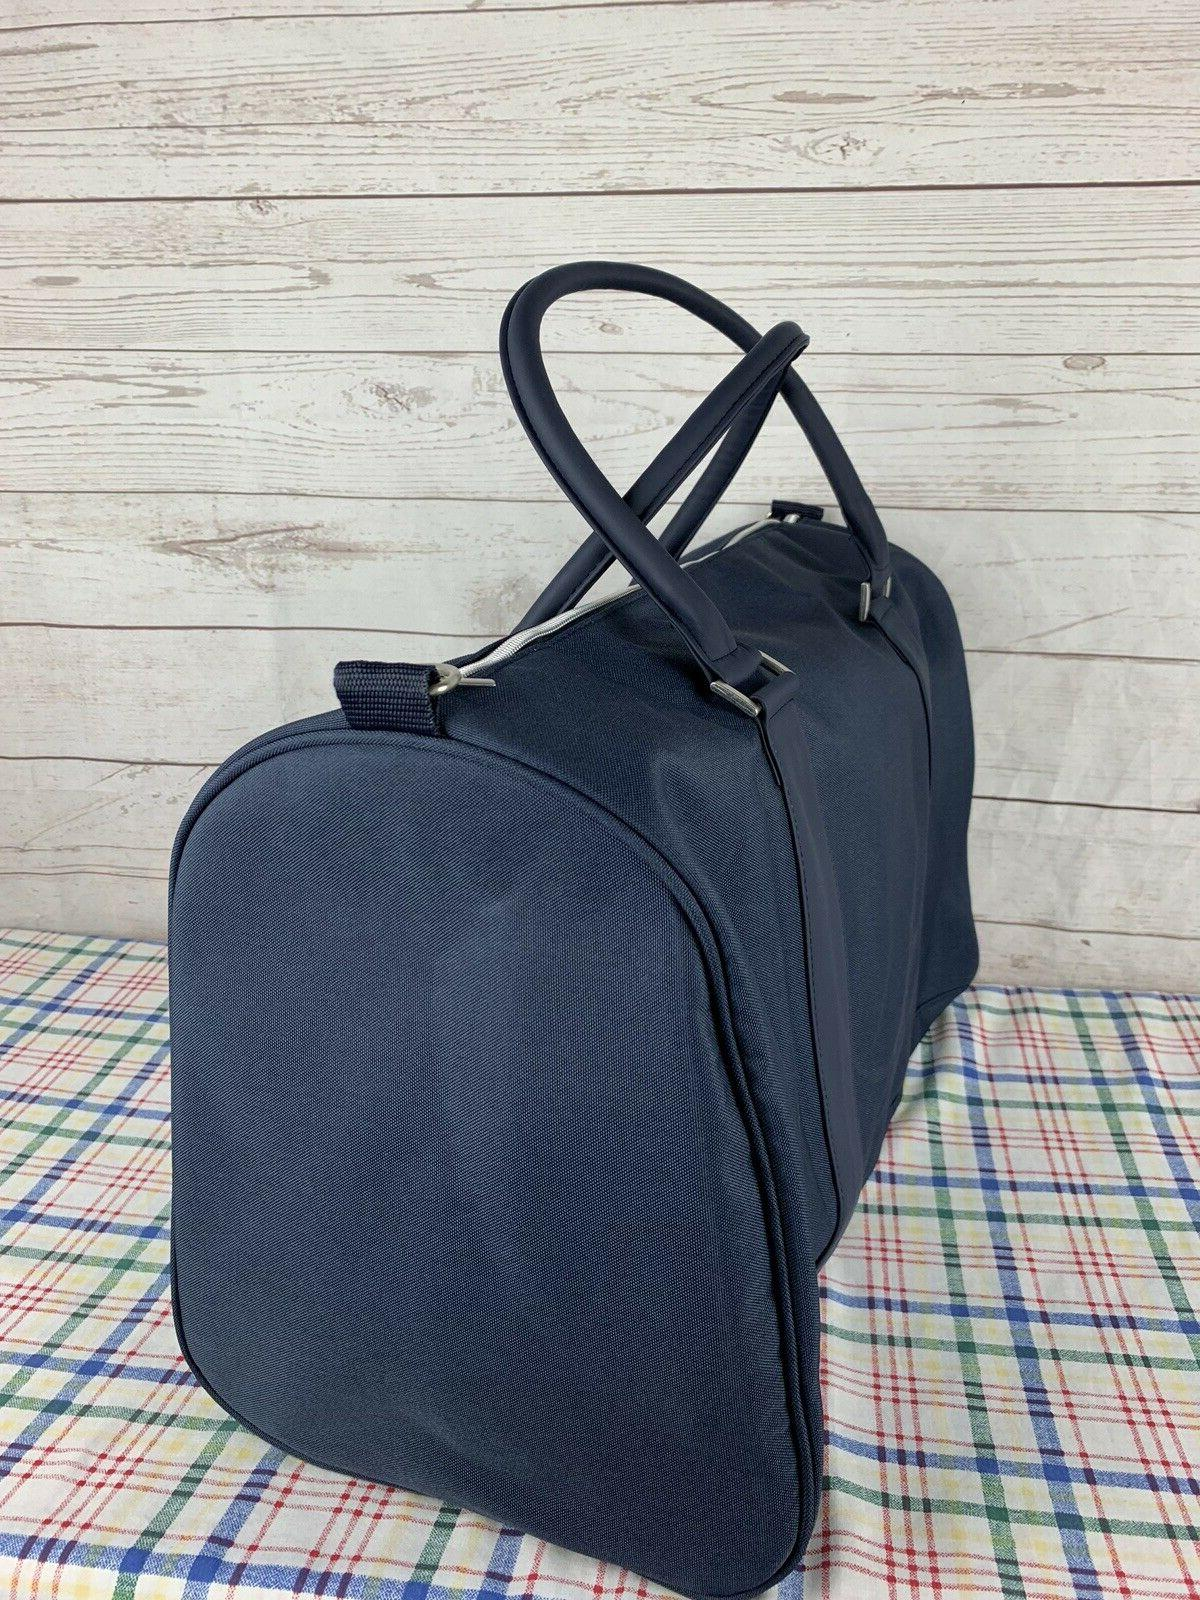 New Weekender Gym Sports Duffle Bag w/